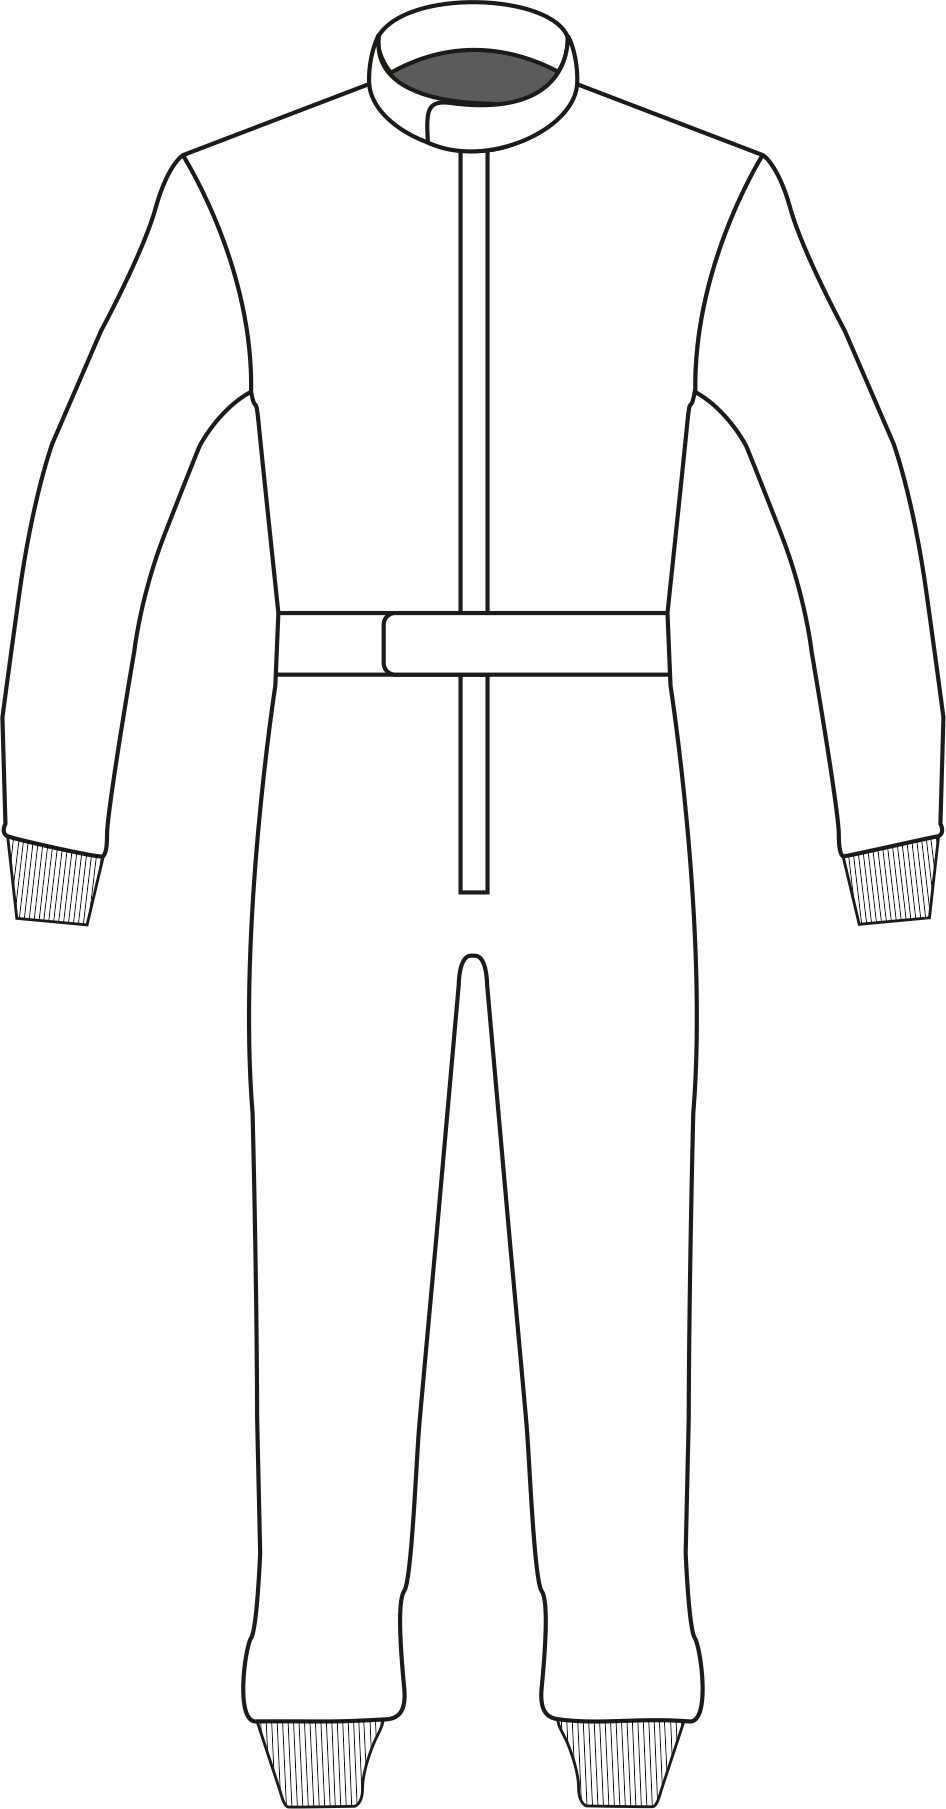 Racesuit Template Design 05